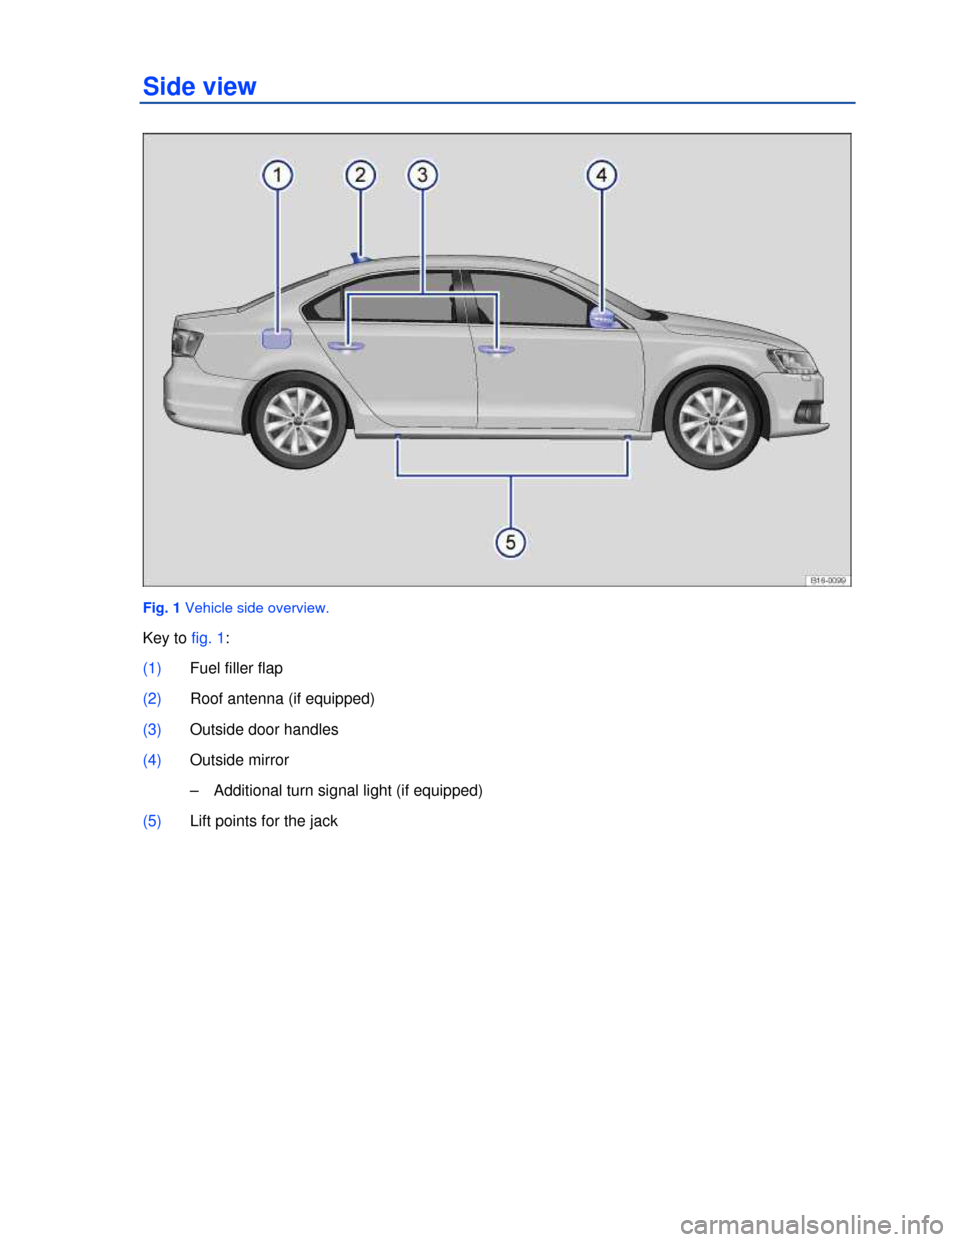 VOLKSWAGEN JETTA 2013 1B / 6.G Owners Manual, Page 1